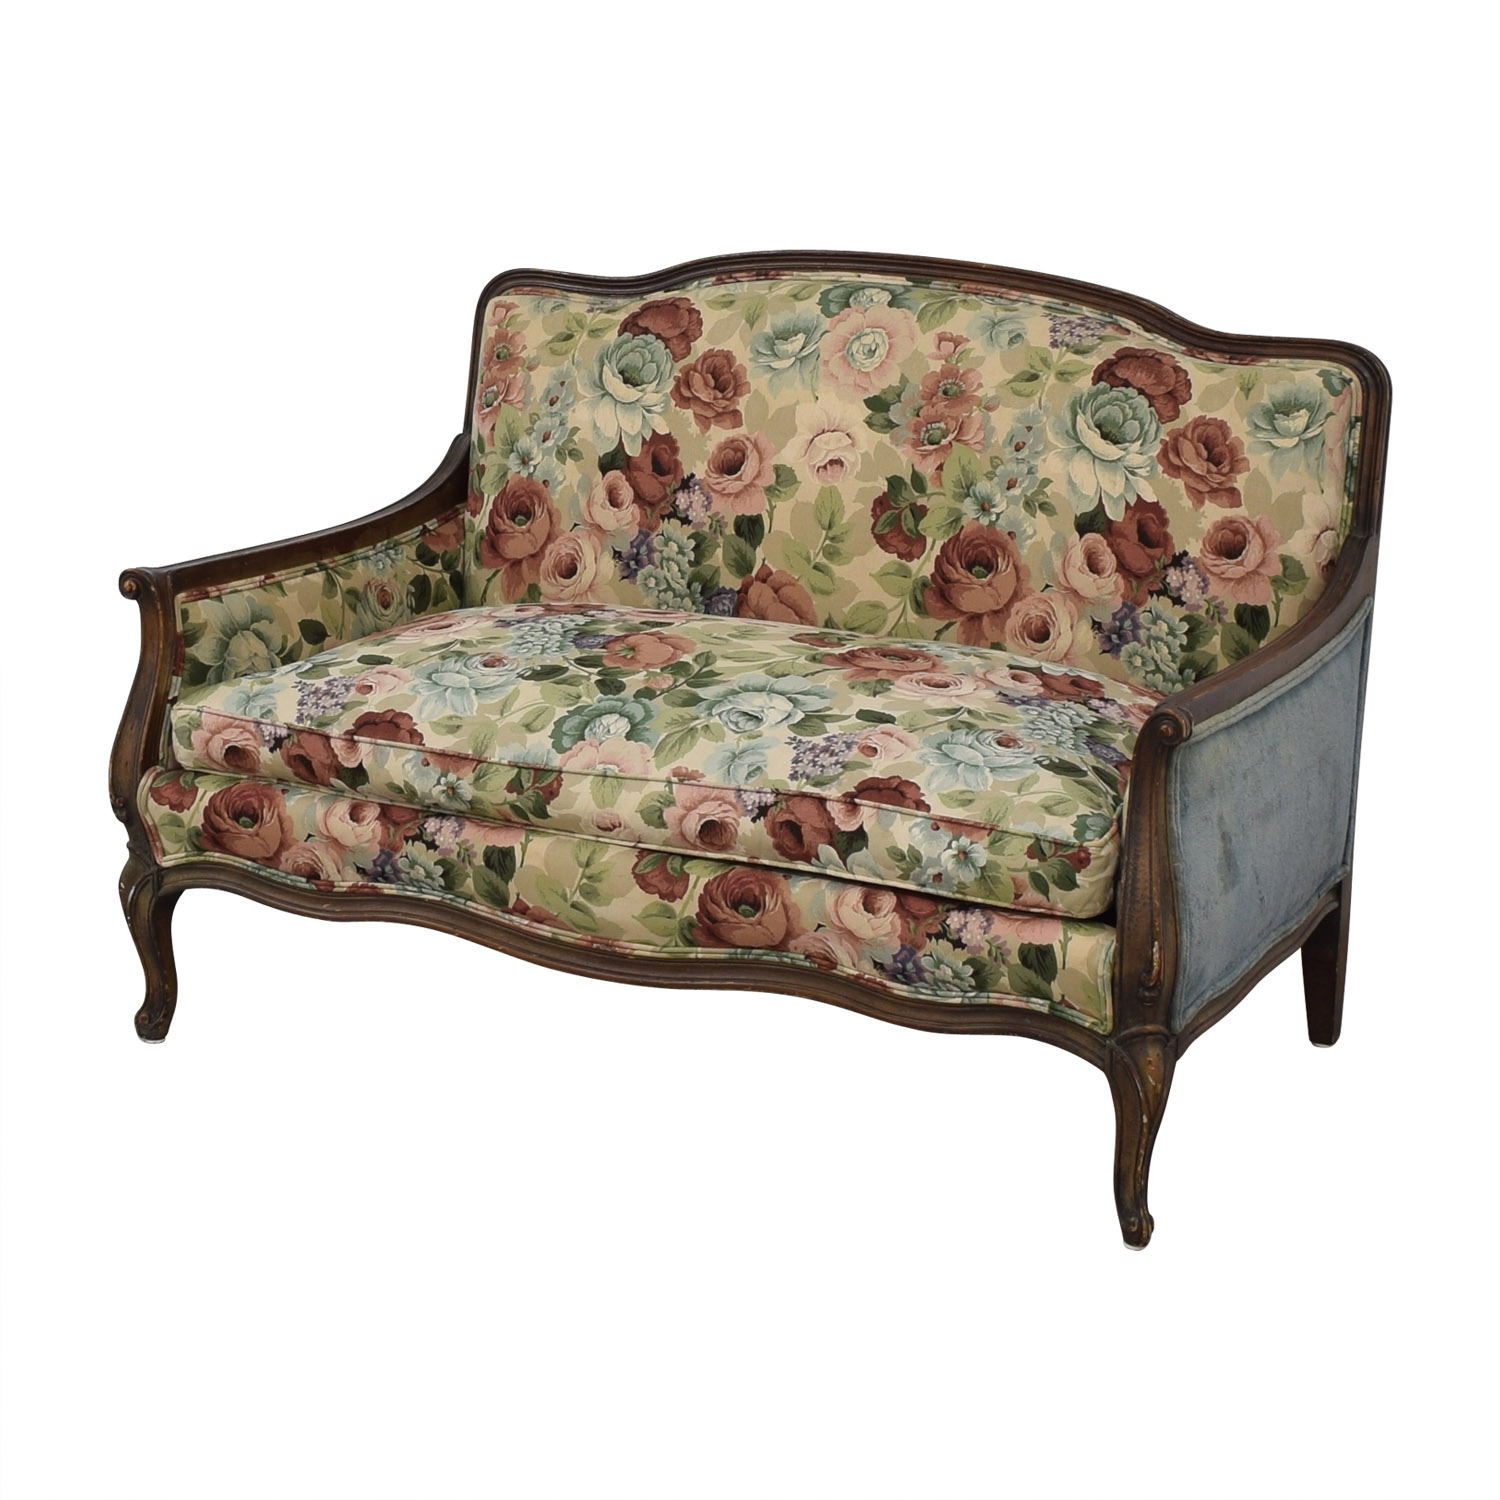 shop Antique Floral Upholstered Single Cushion Loveseat  Loveseats